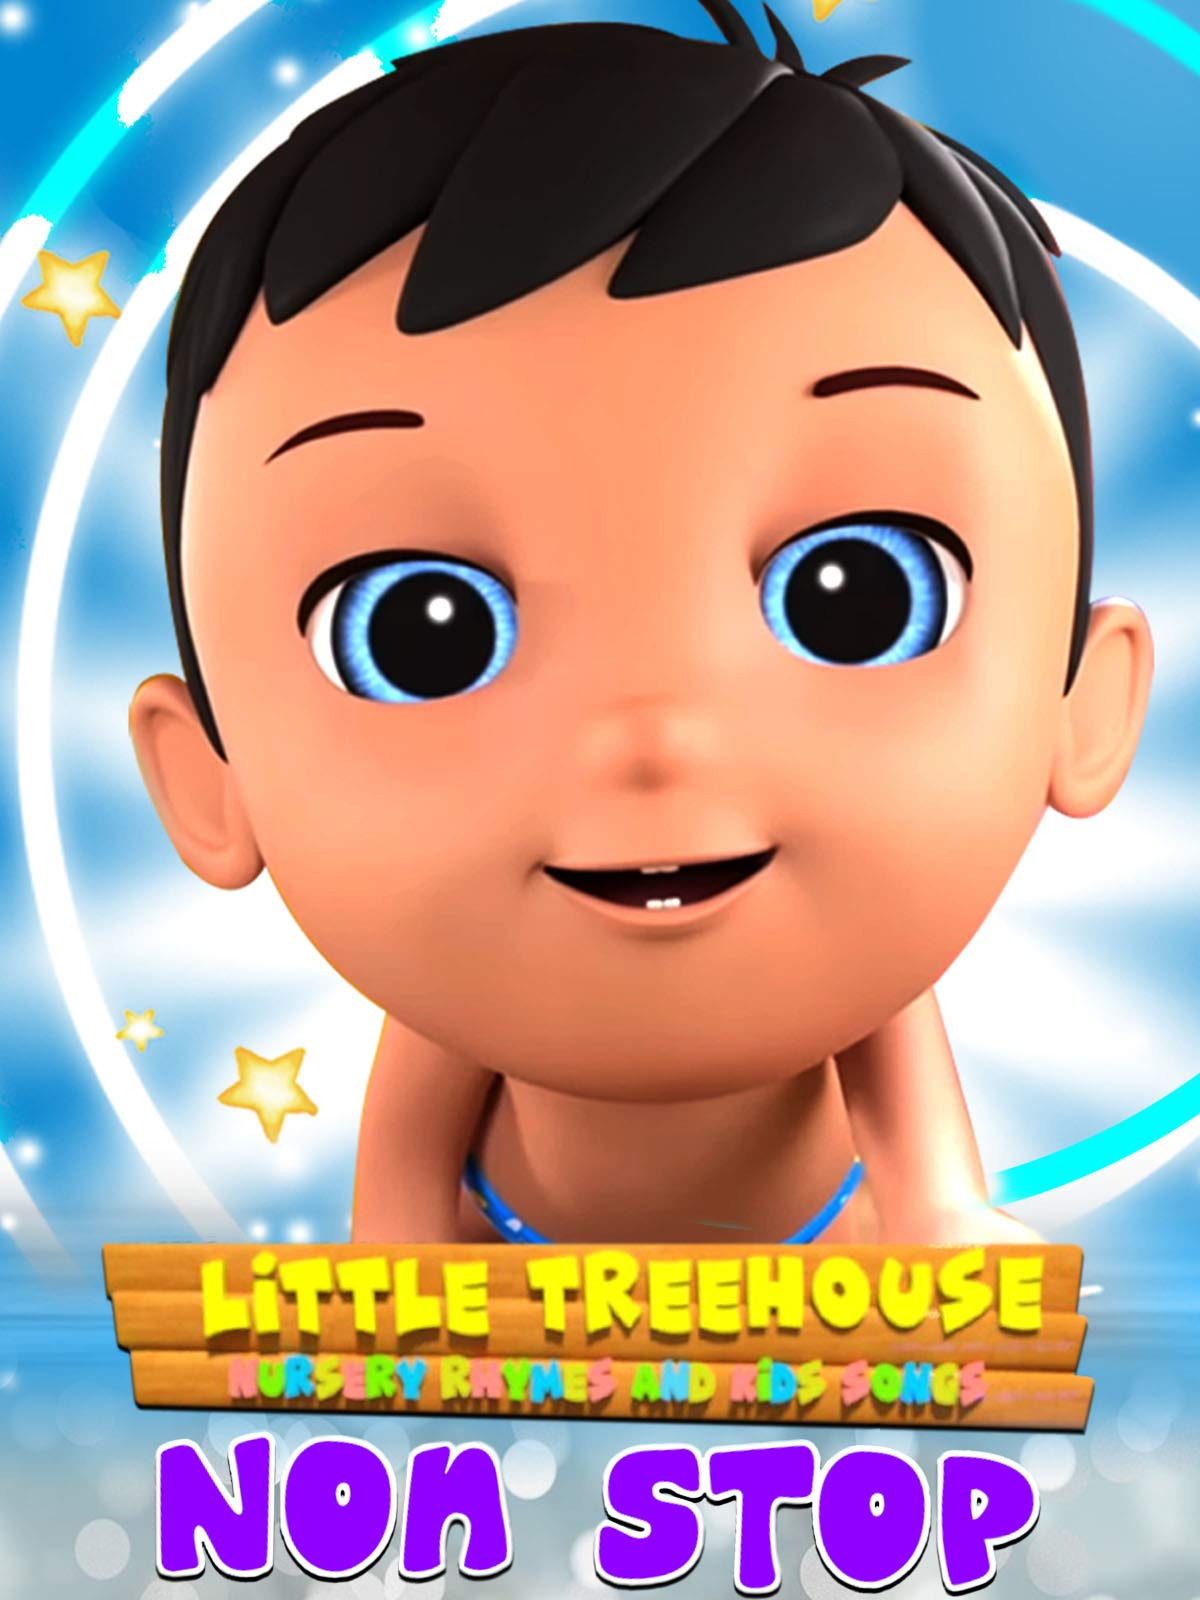 Amazon.com: Little Treehouse Nursery Rhymes and Kids Songs: Non-Stop ...